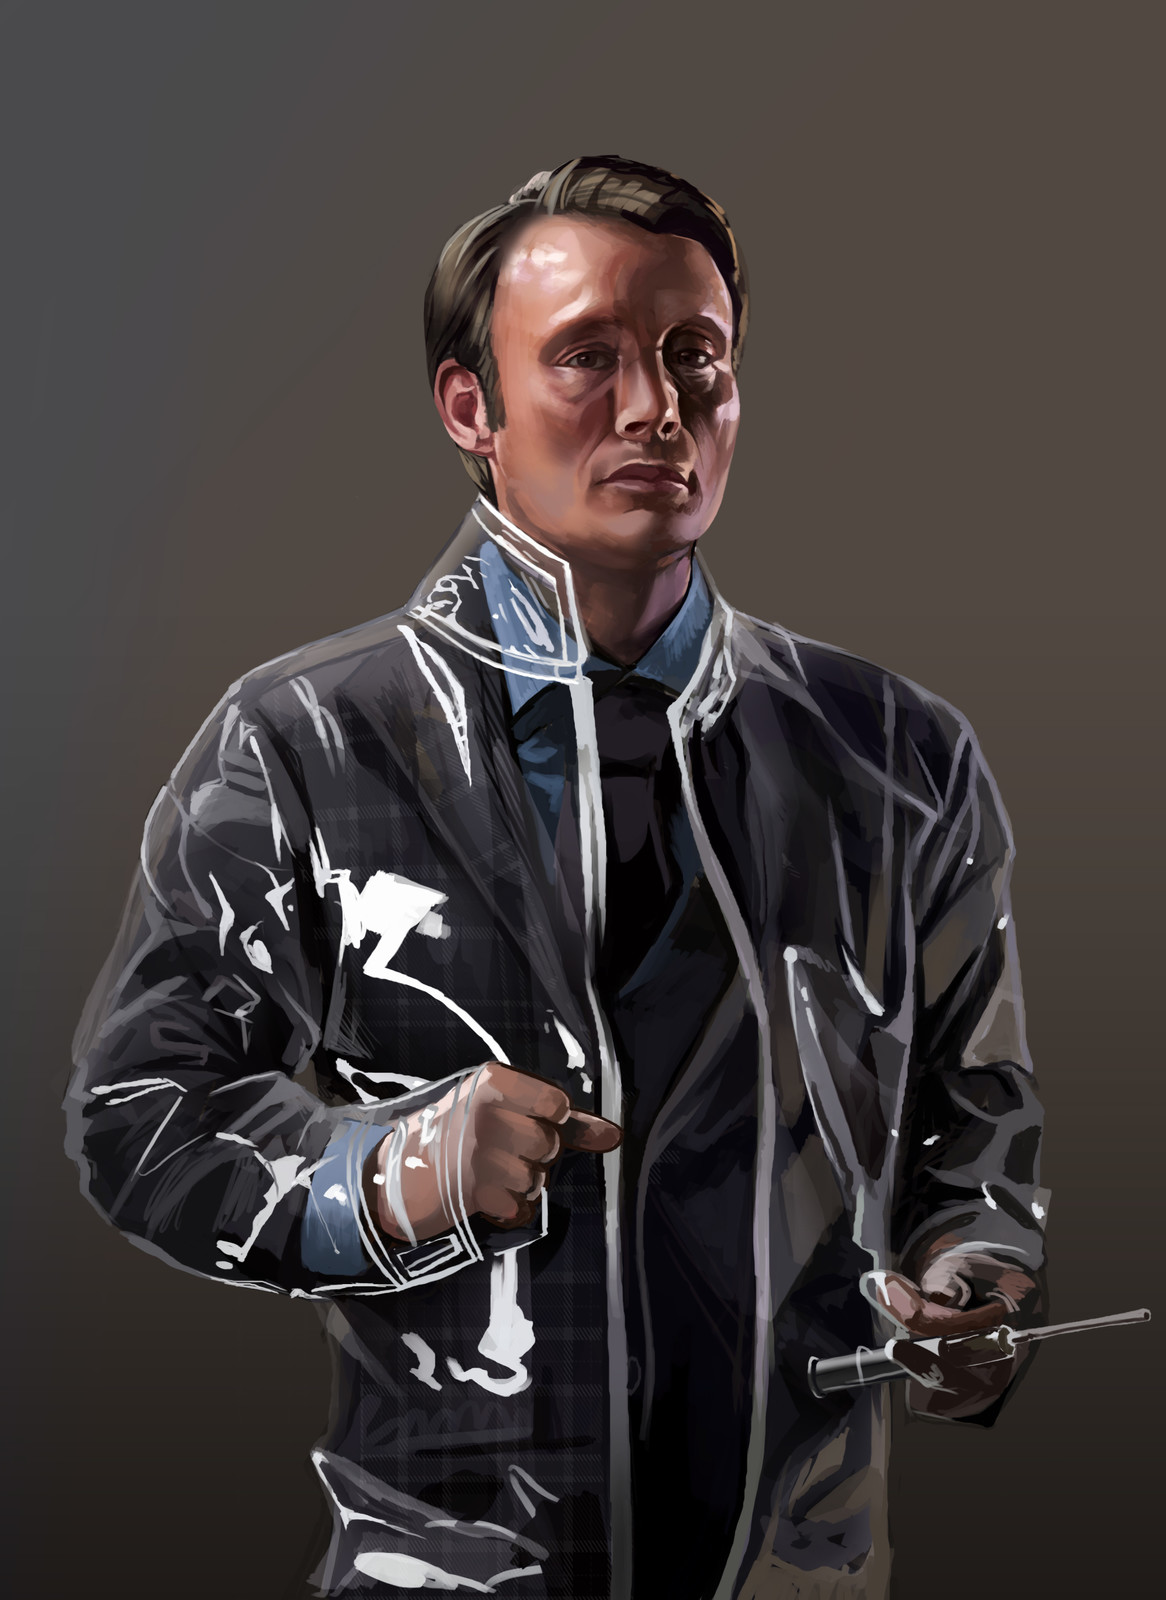 Based on a photo of Mads Mikkelsen as  Hannibal.